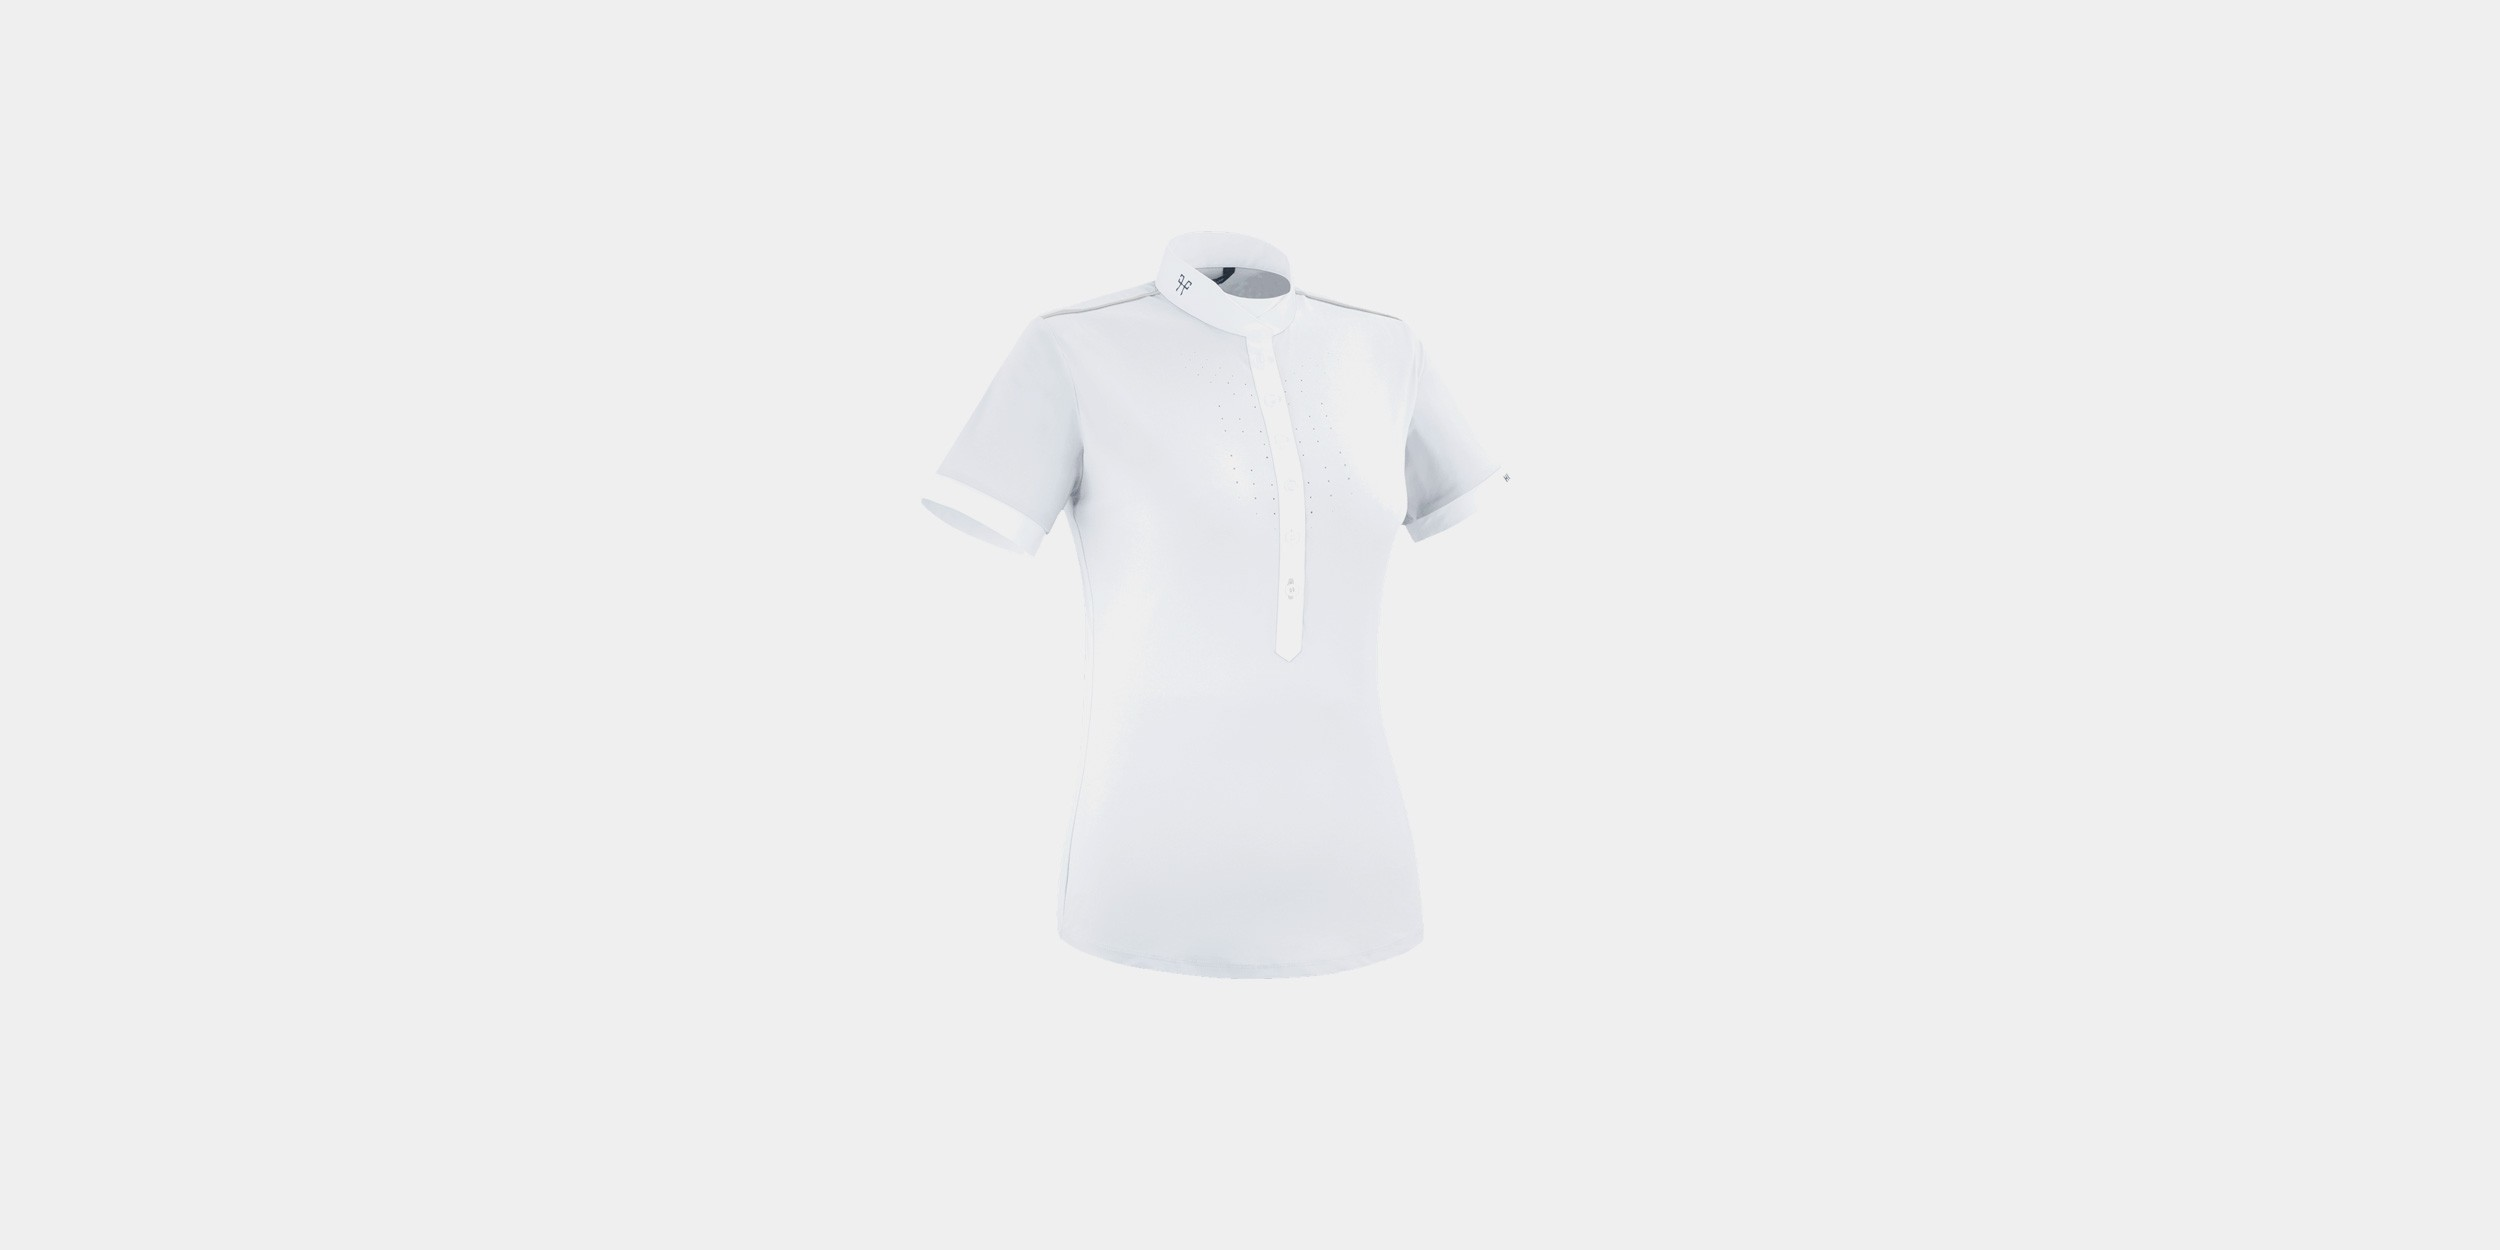 Sleeveless riding competition shirt for women